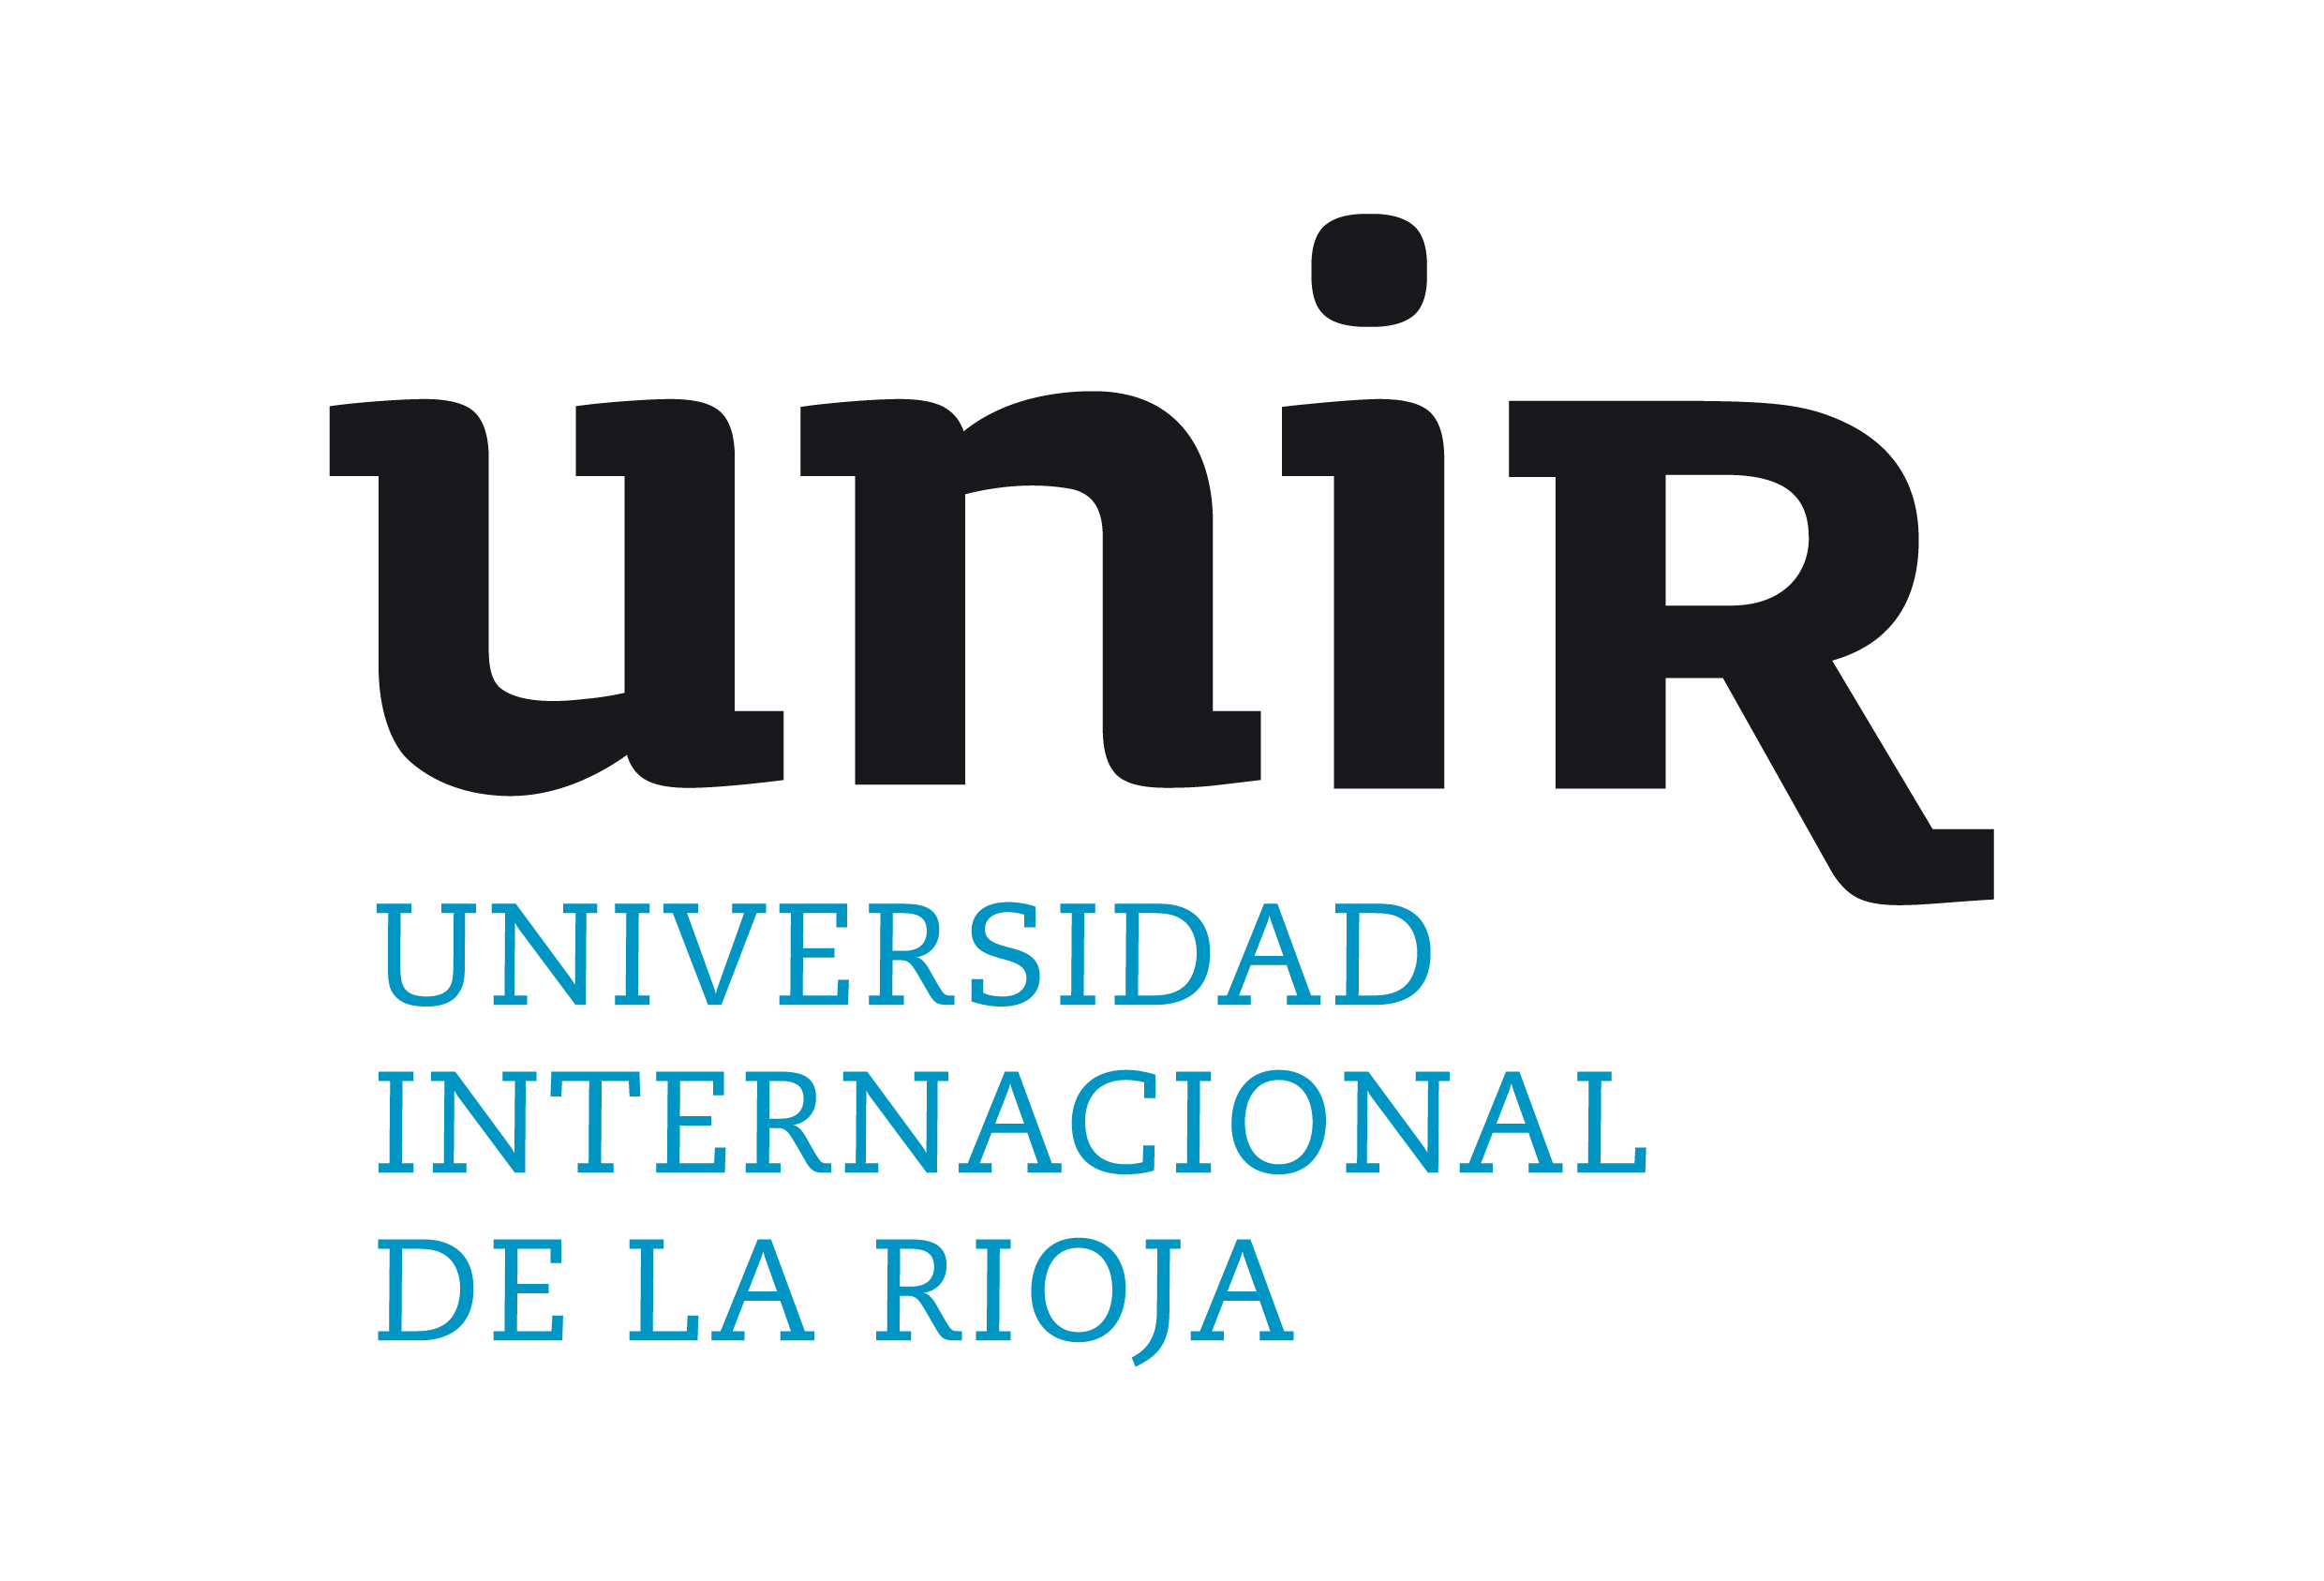 UNIR, Universidad Internacional de La Rioja, Spain